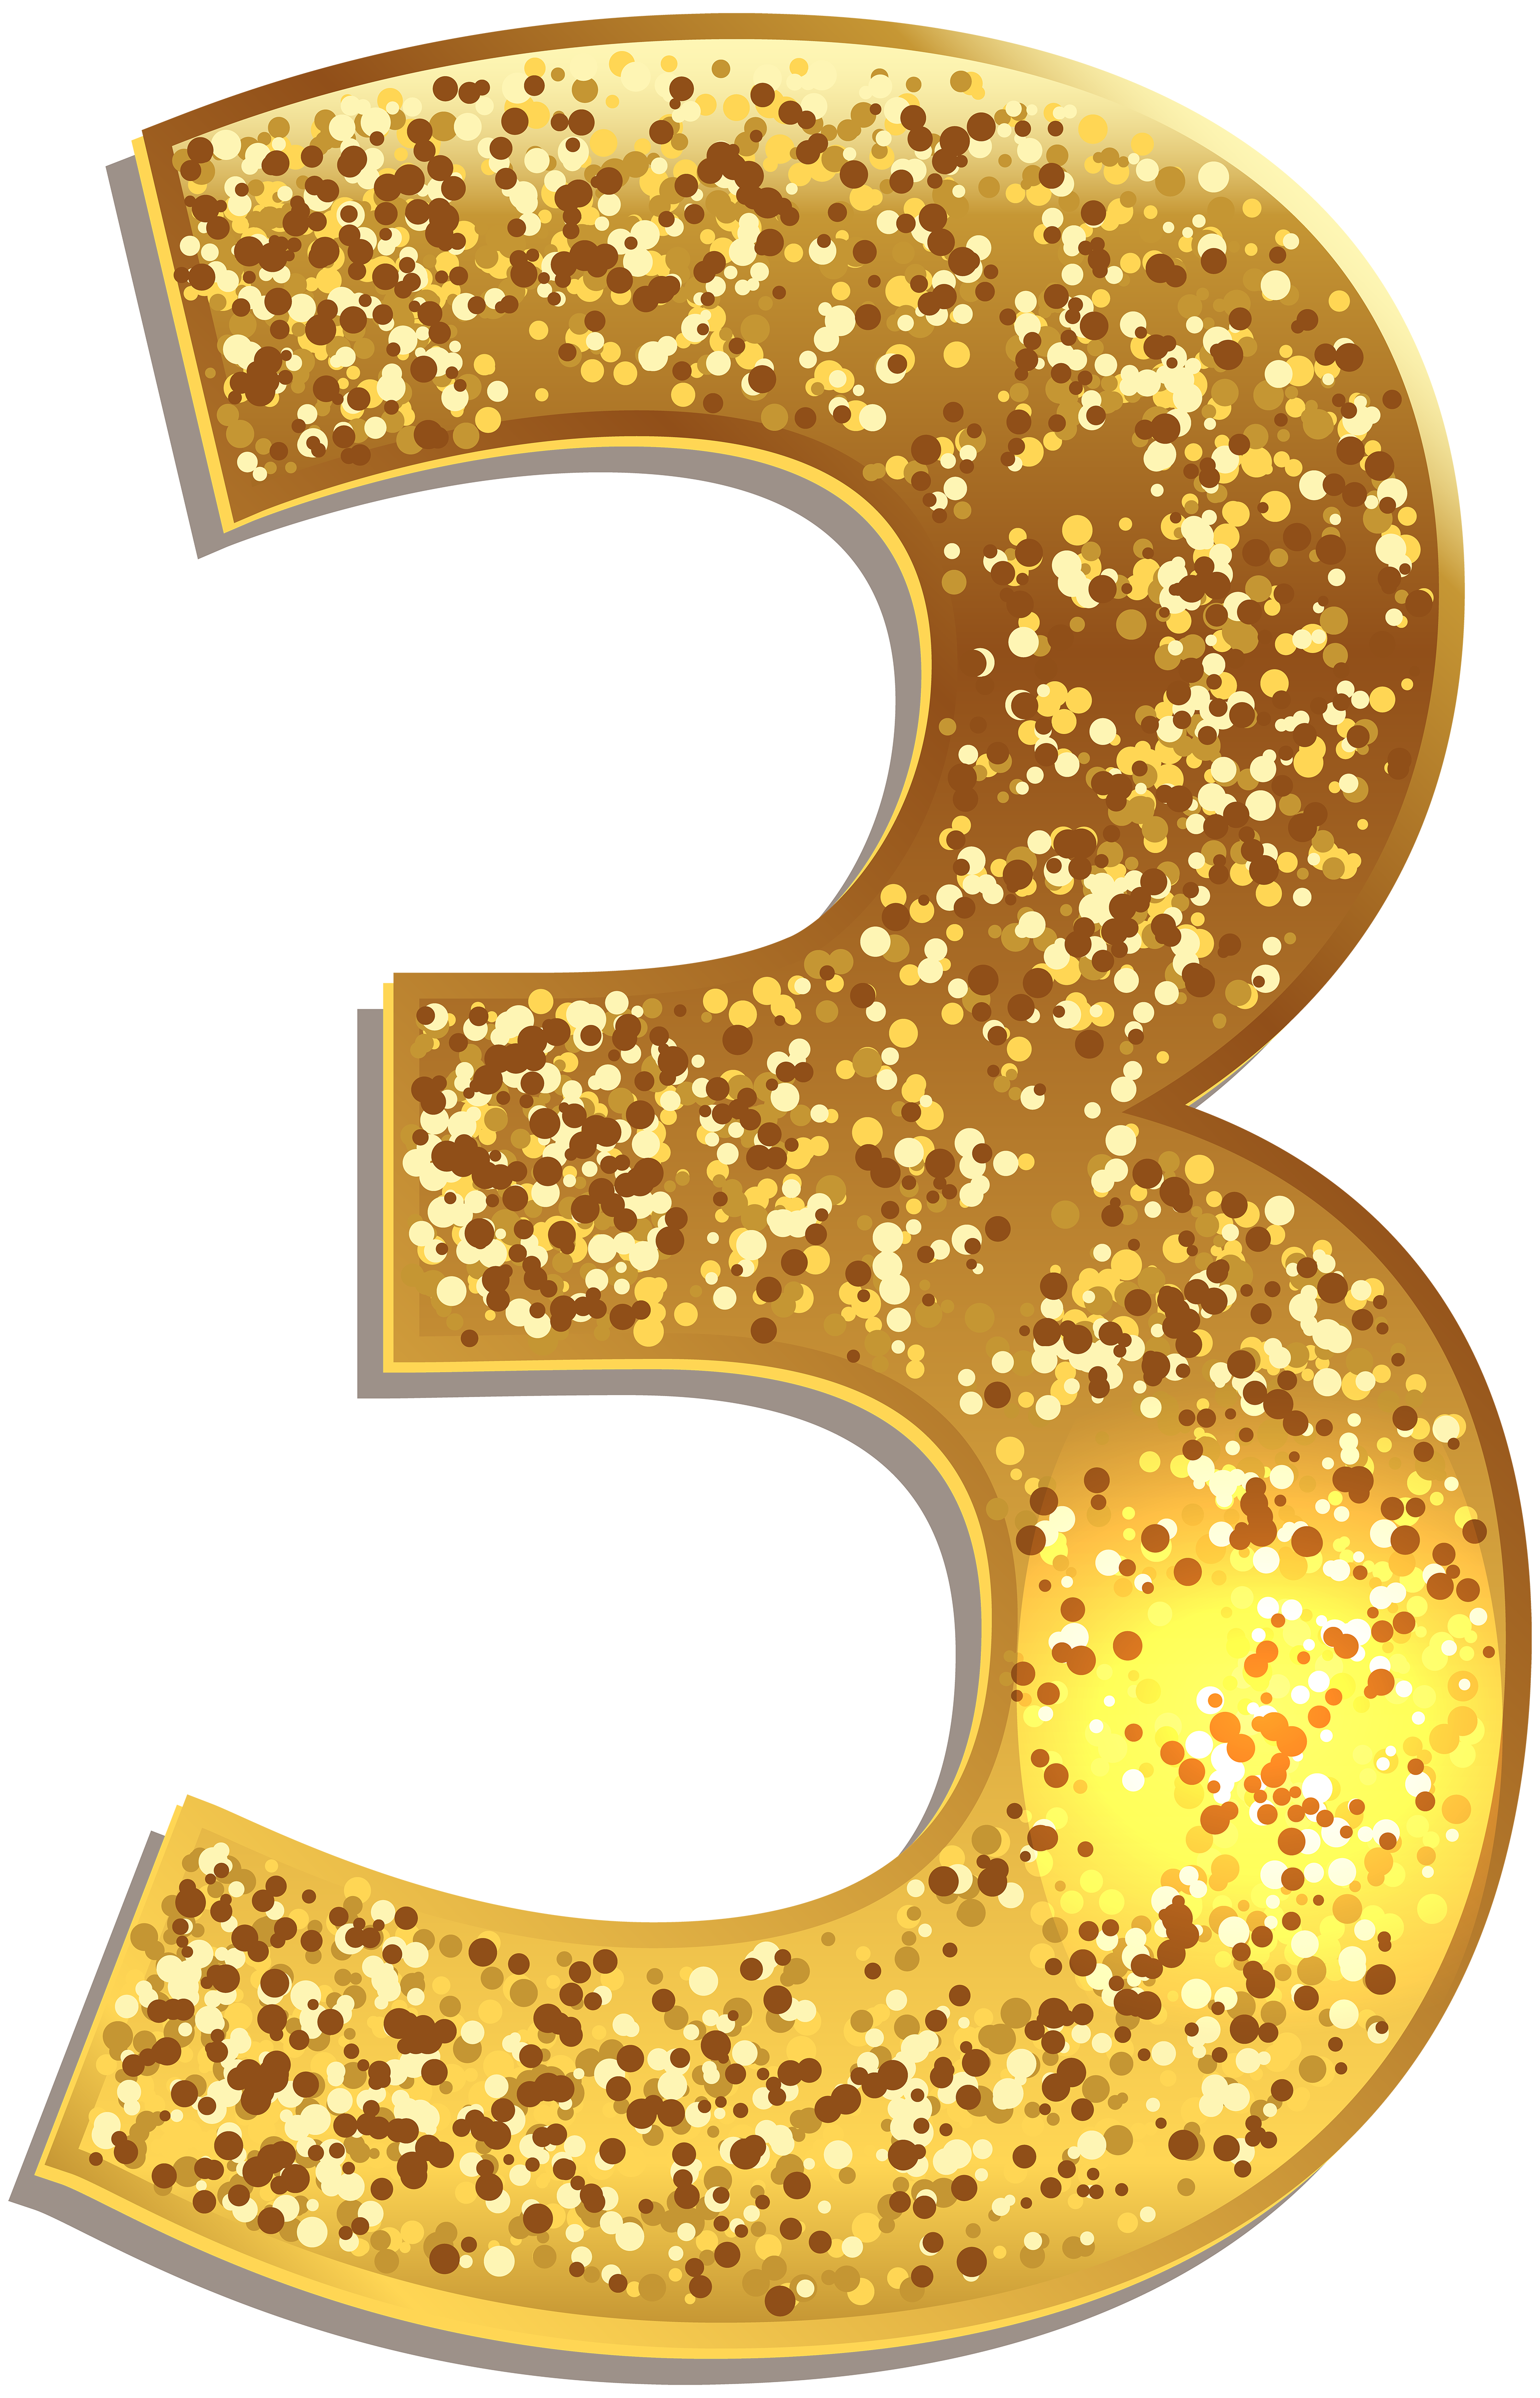 Https Gallery Yopriceville Com Free Clipart Pictures Decorative Numbers Number Three Gold Shining Png Clip Clip Art Birthday Banner Free Printable Art Images